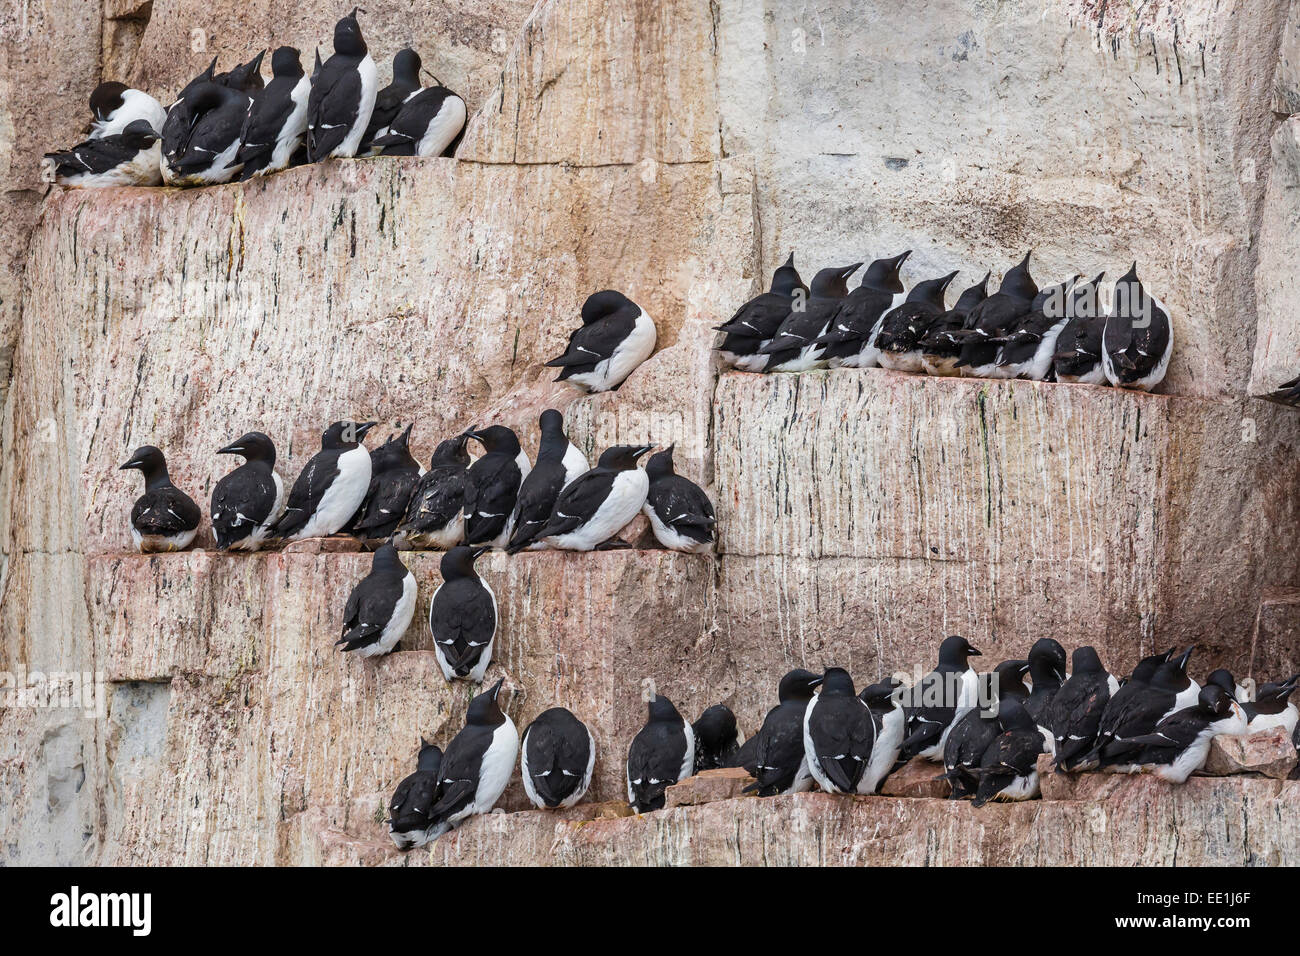 Adult Brunnich's guillemots (Uria lomvia) nesting on ledges at Alkefjelet, Cape Fanshawe, Spitsbergen, Svalbard, Stock Photo